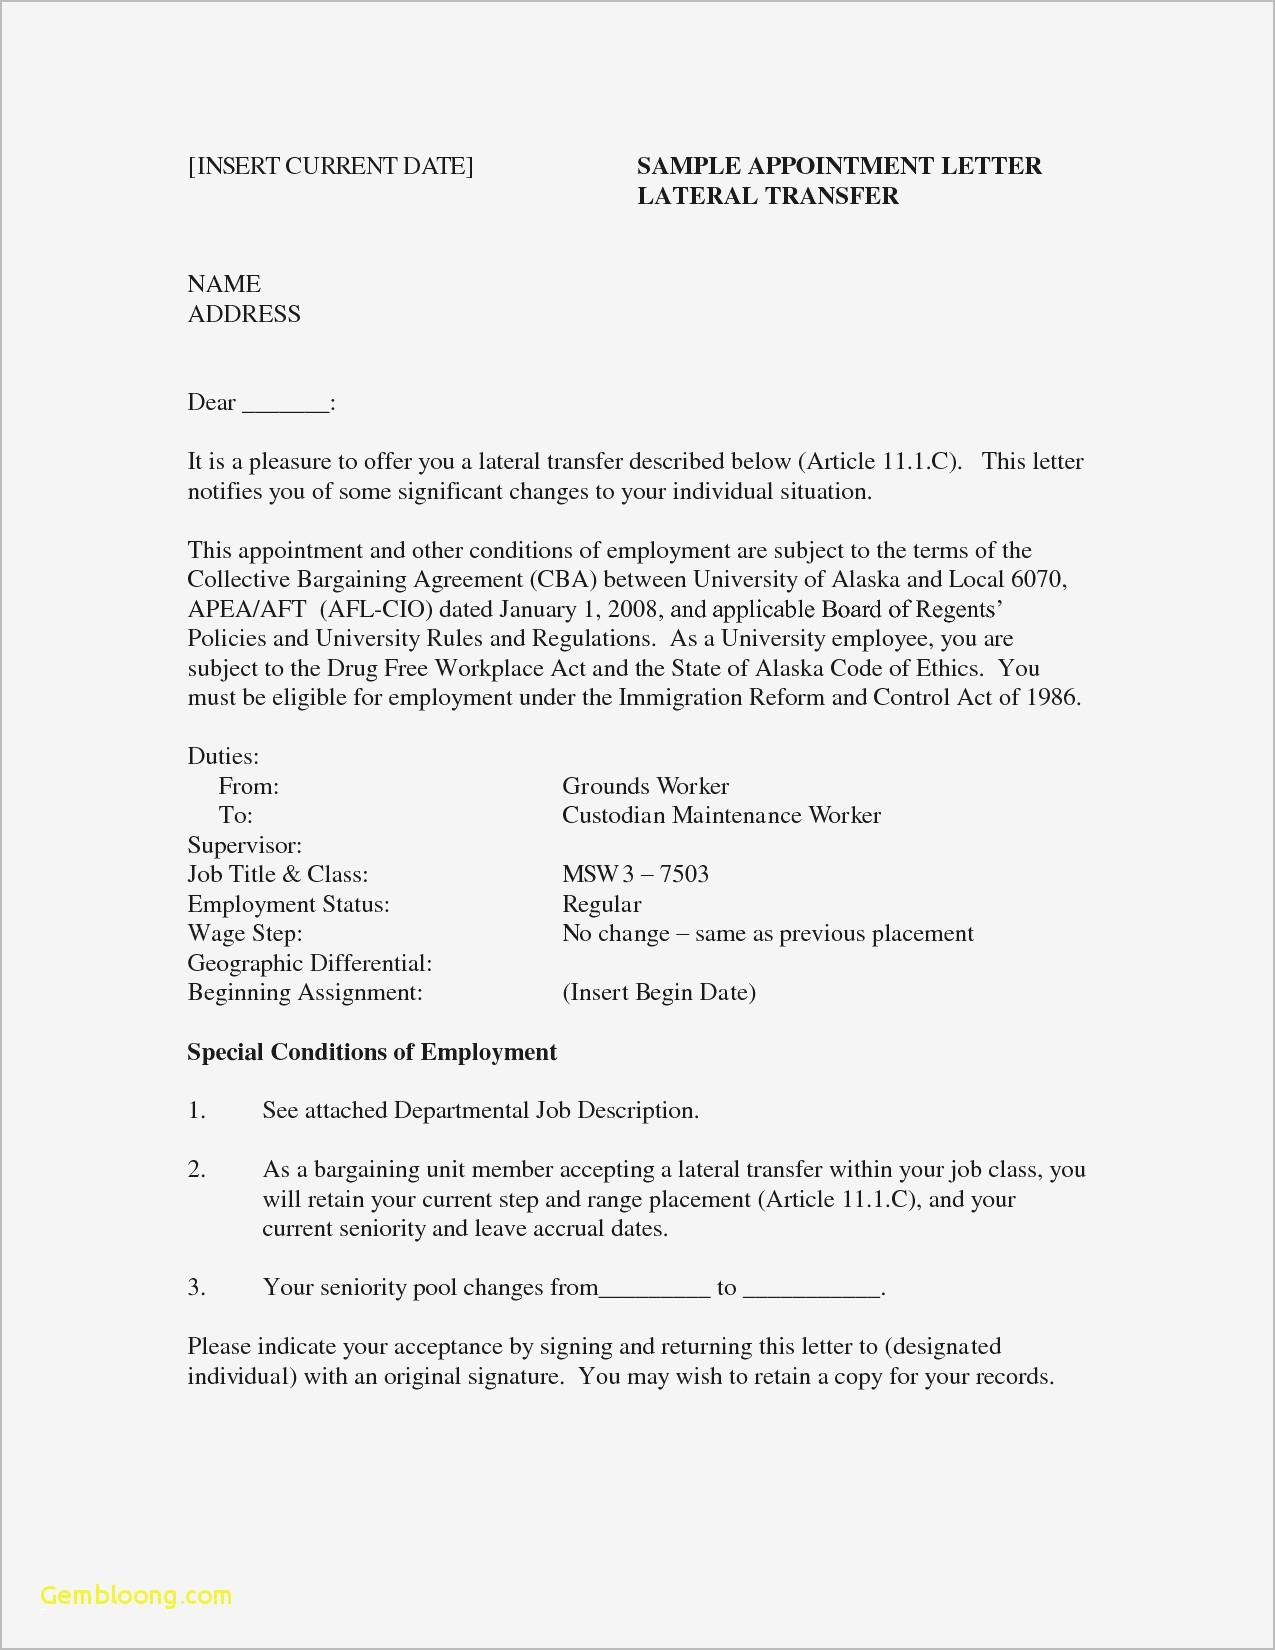 Transfer Student Resume - Sample Chronological Resume format Free Downloads Best Actor